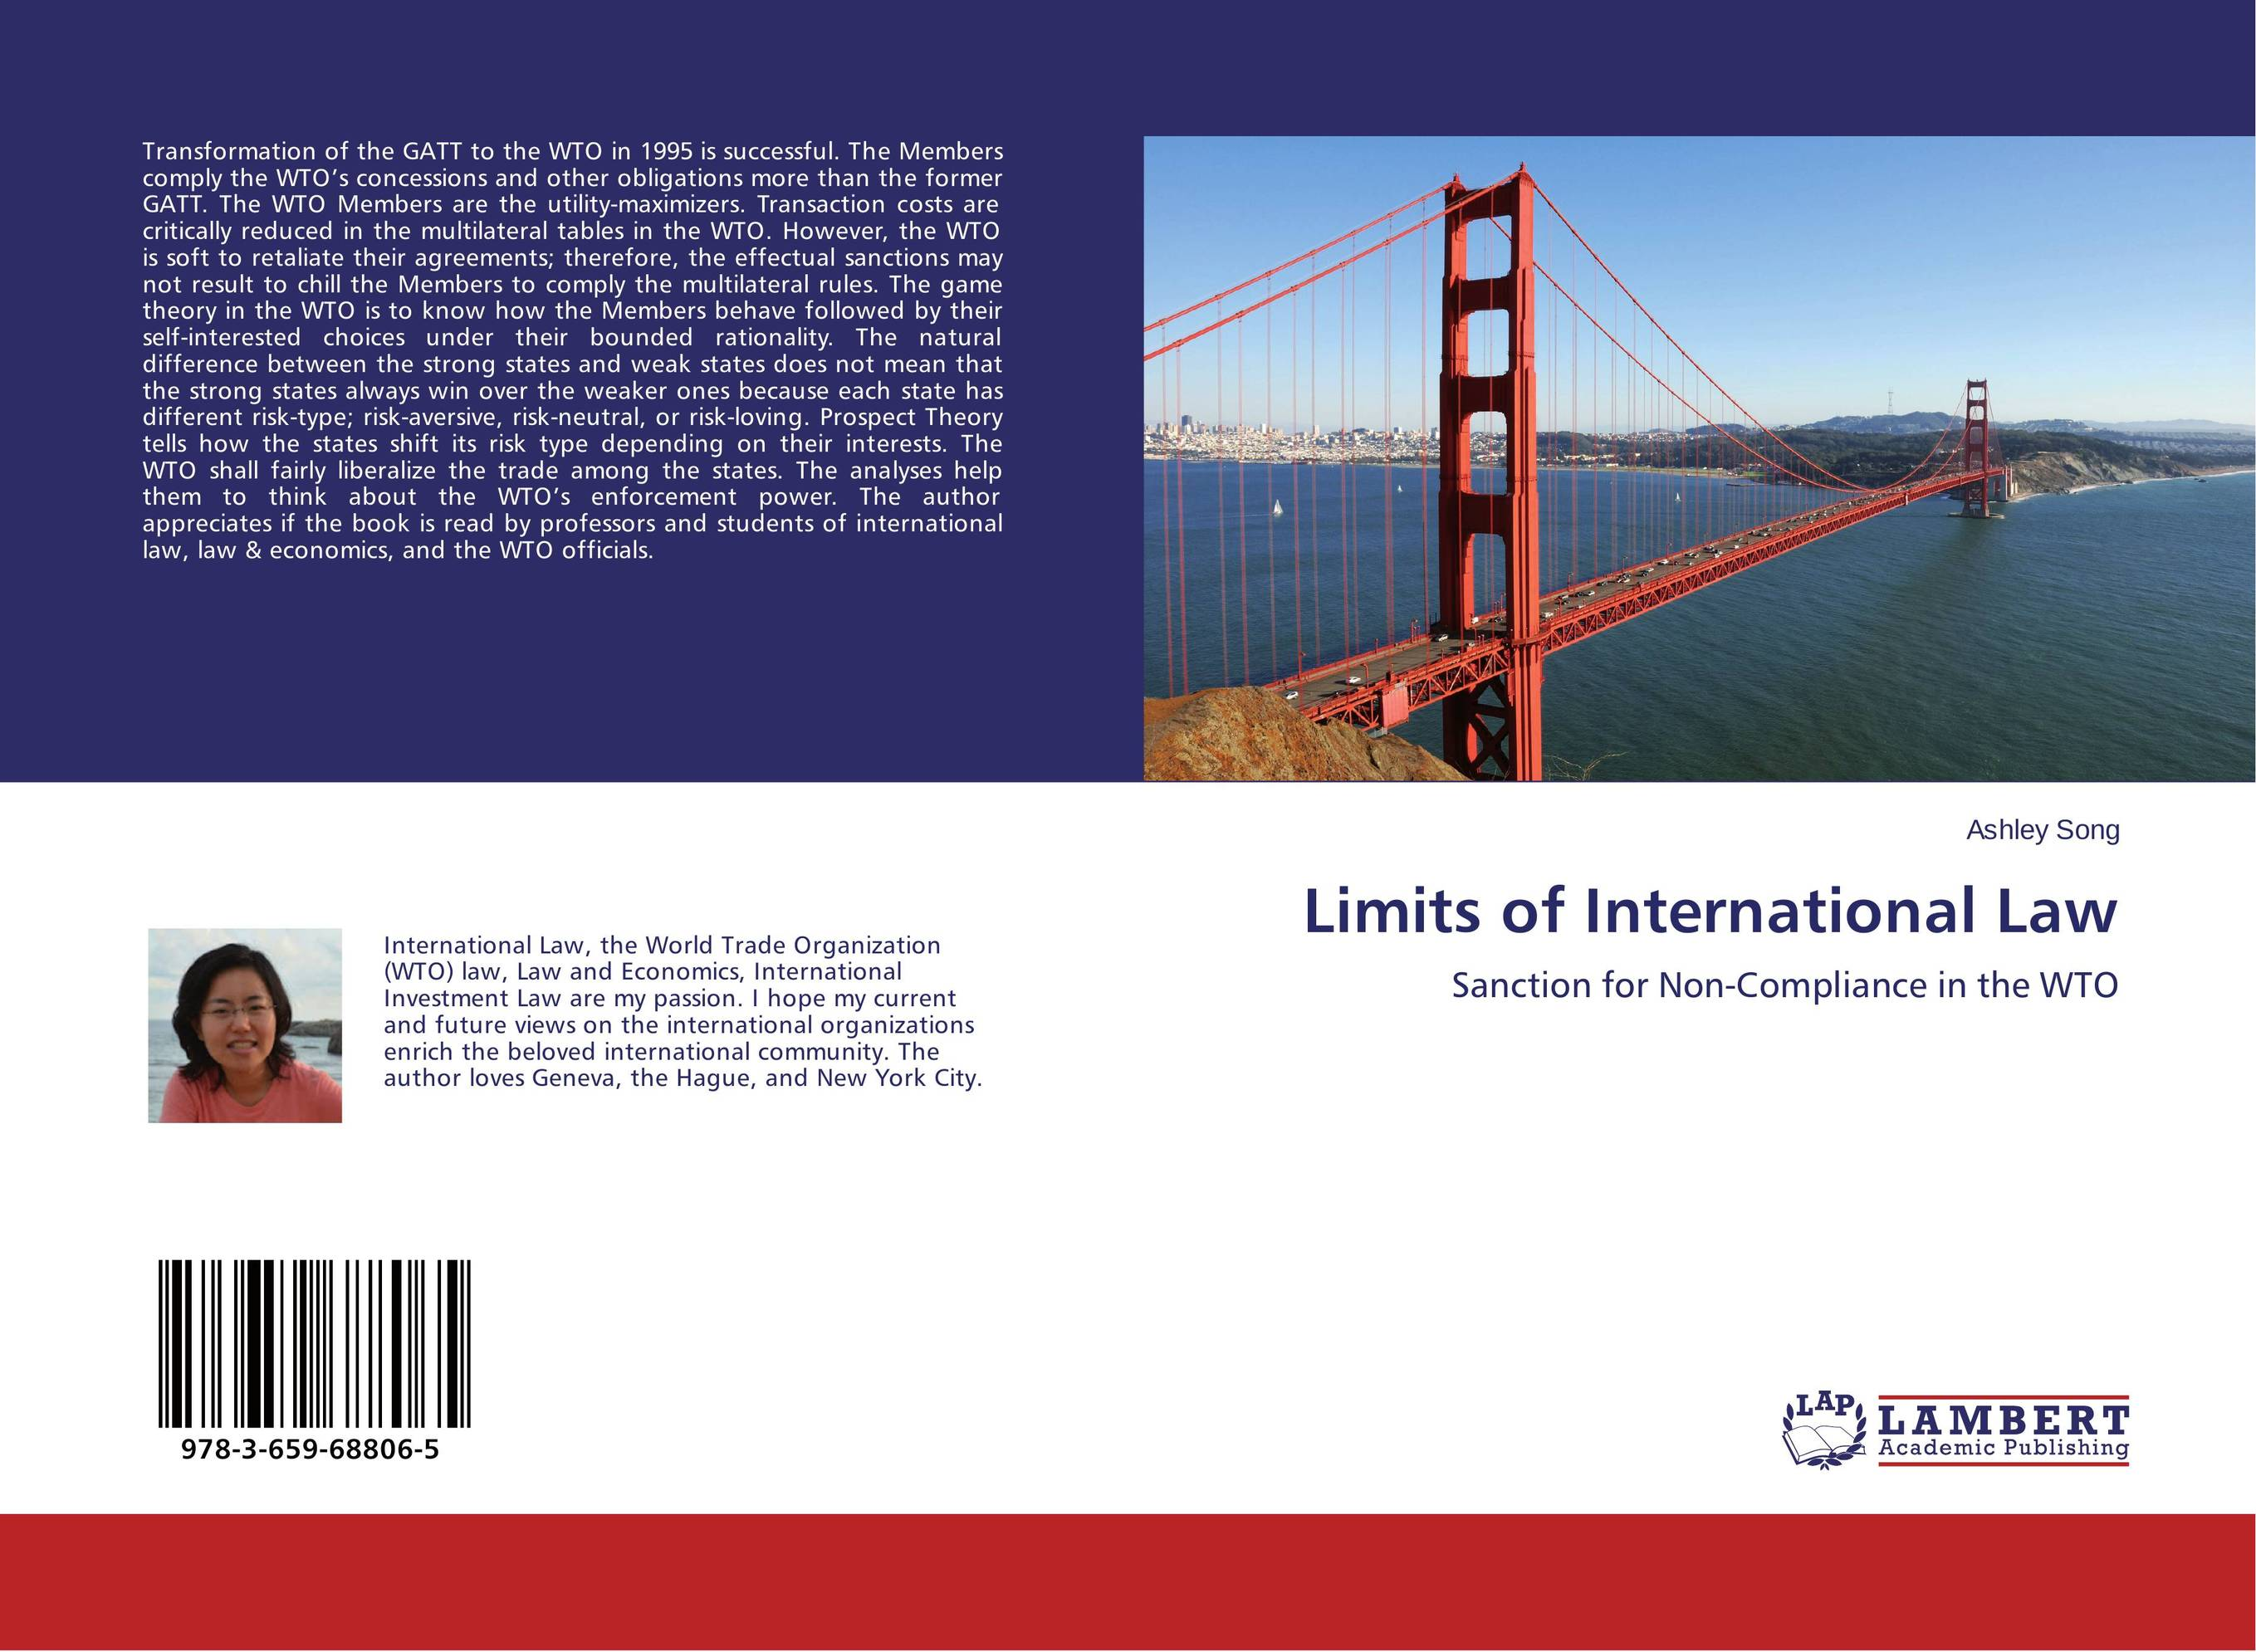 Limits of International Law on the limits of the law